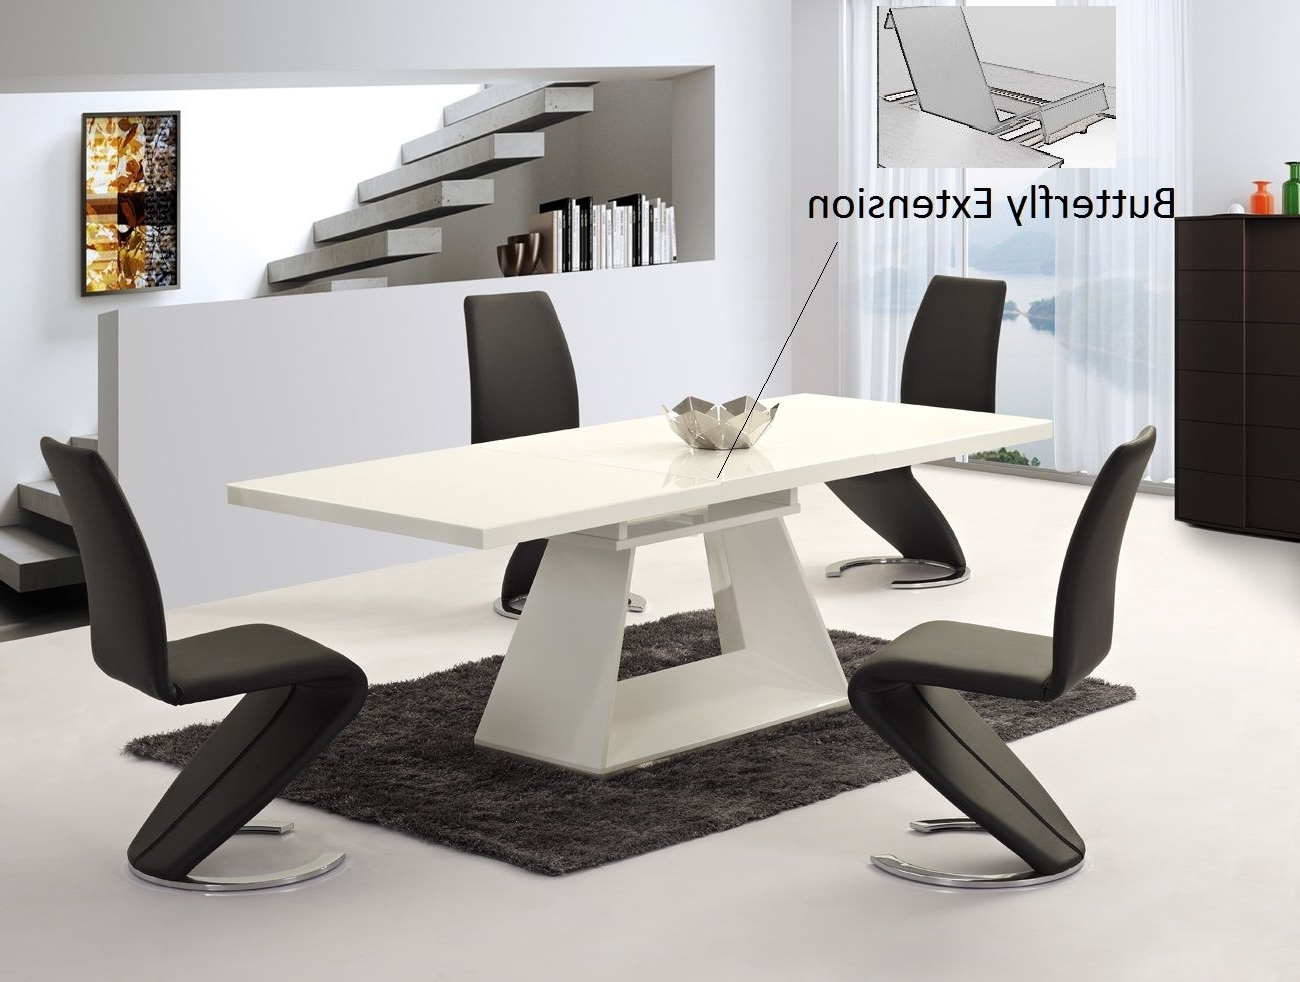 2018 Ga Silvano Extending White Gloss 160 220Cm Dining Table & Luciano Chairs intended for White Extending Dining Tables And Chairs